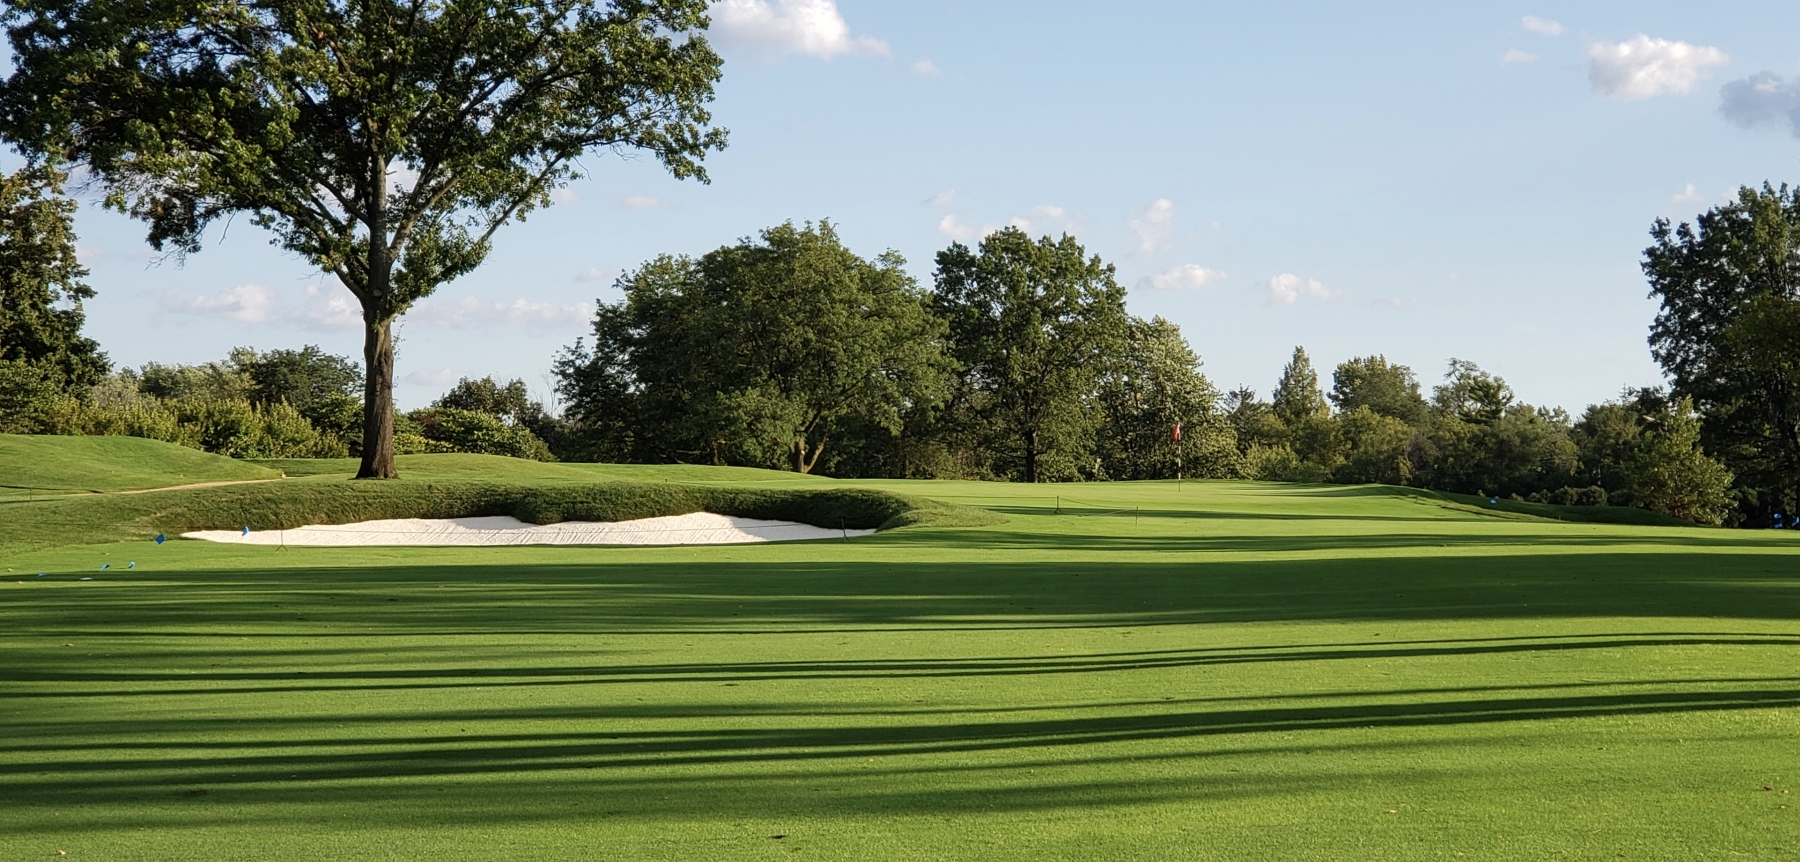 Ruth Lake Country Club - Hinsdale, Illinois